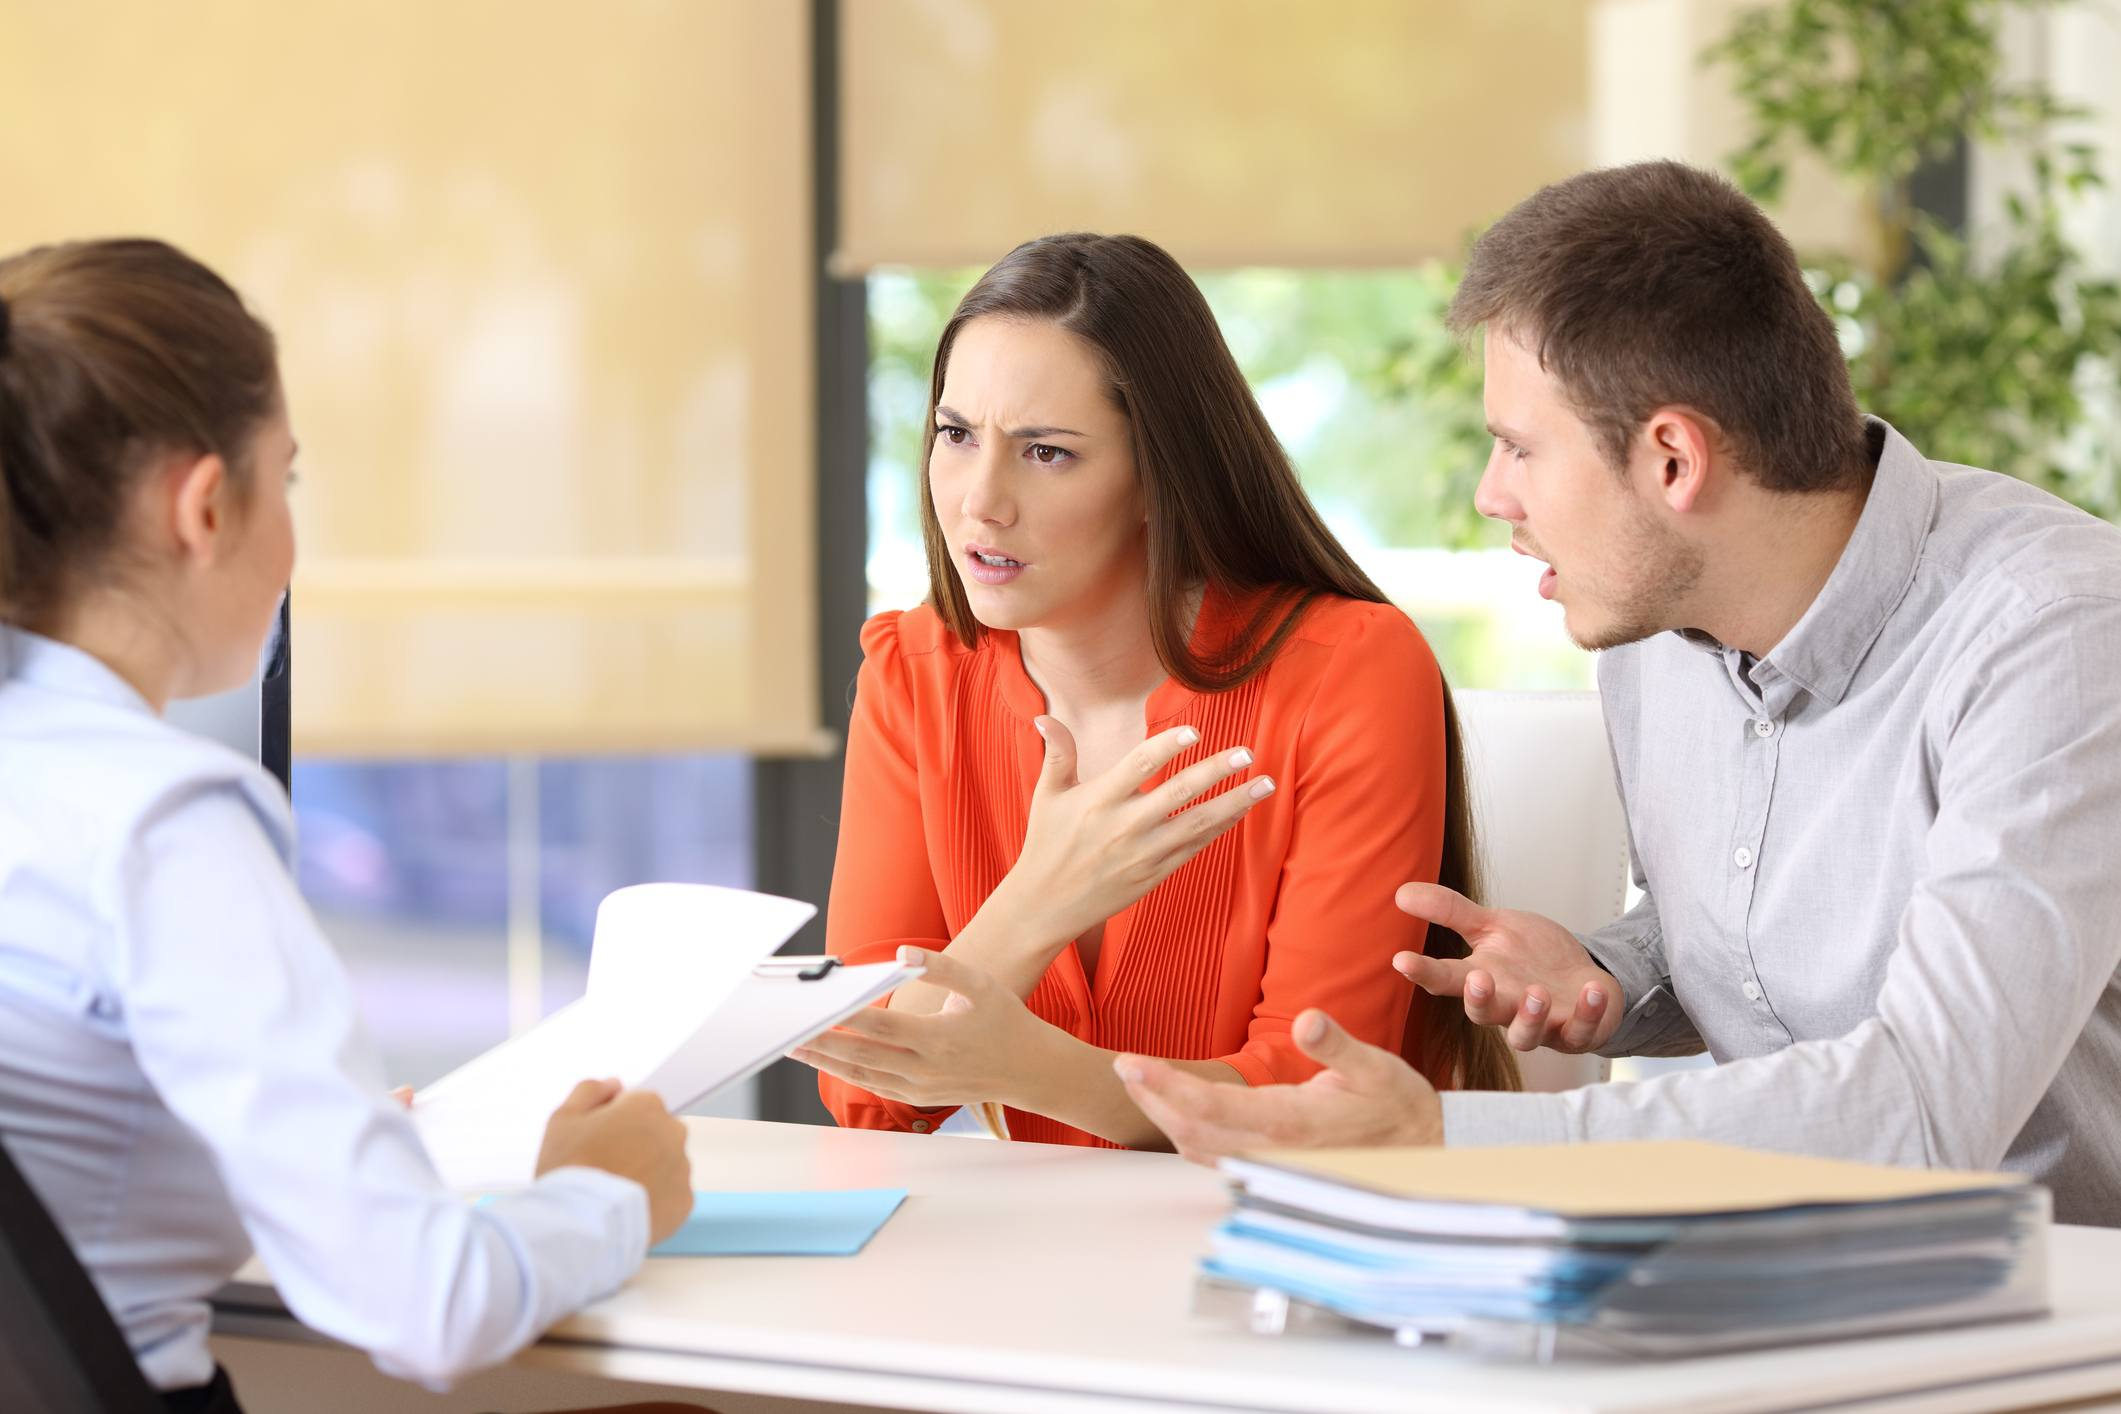 Couple arguing in a marriage counseling or divorce proceedings